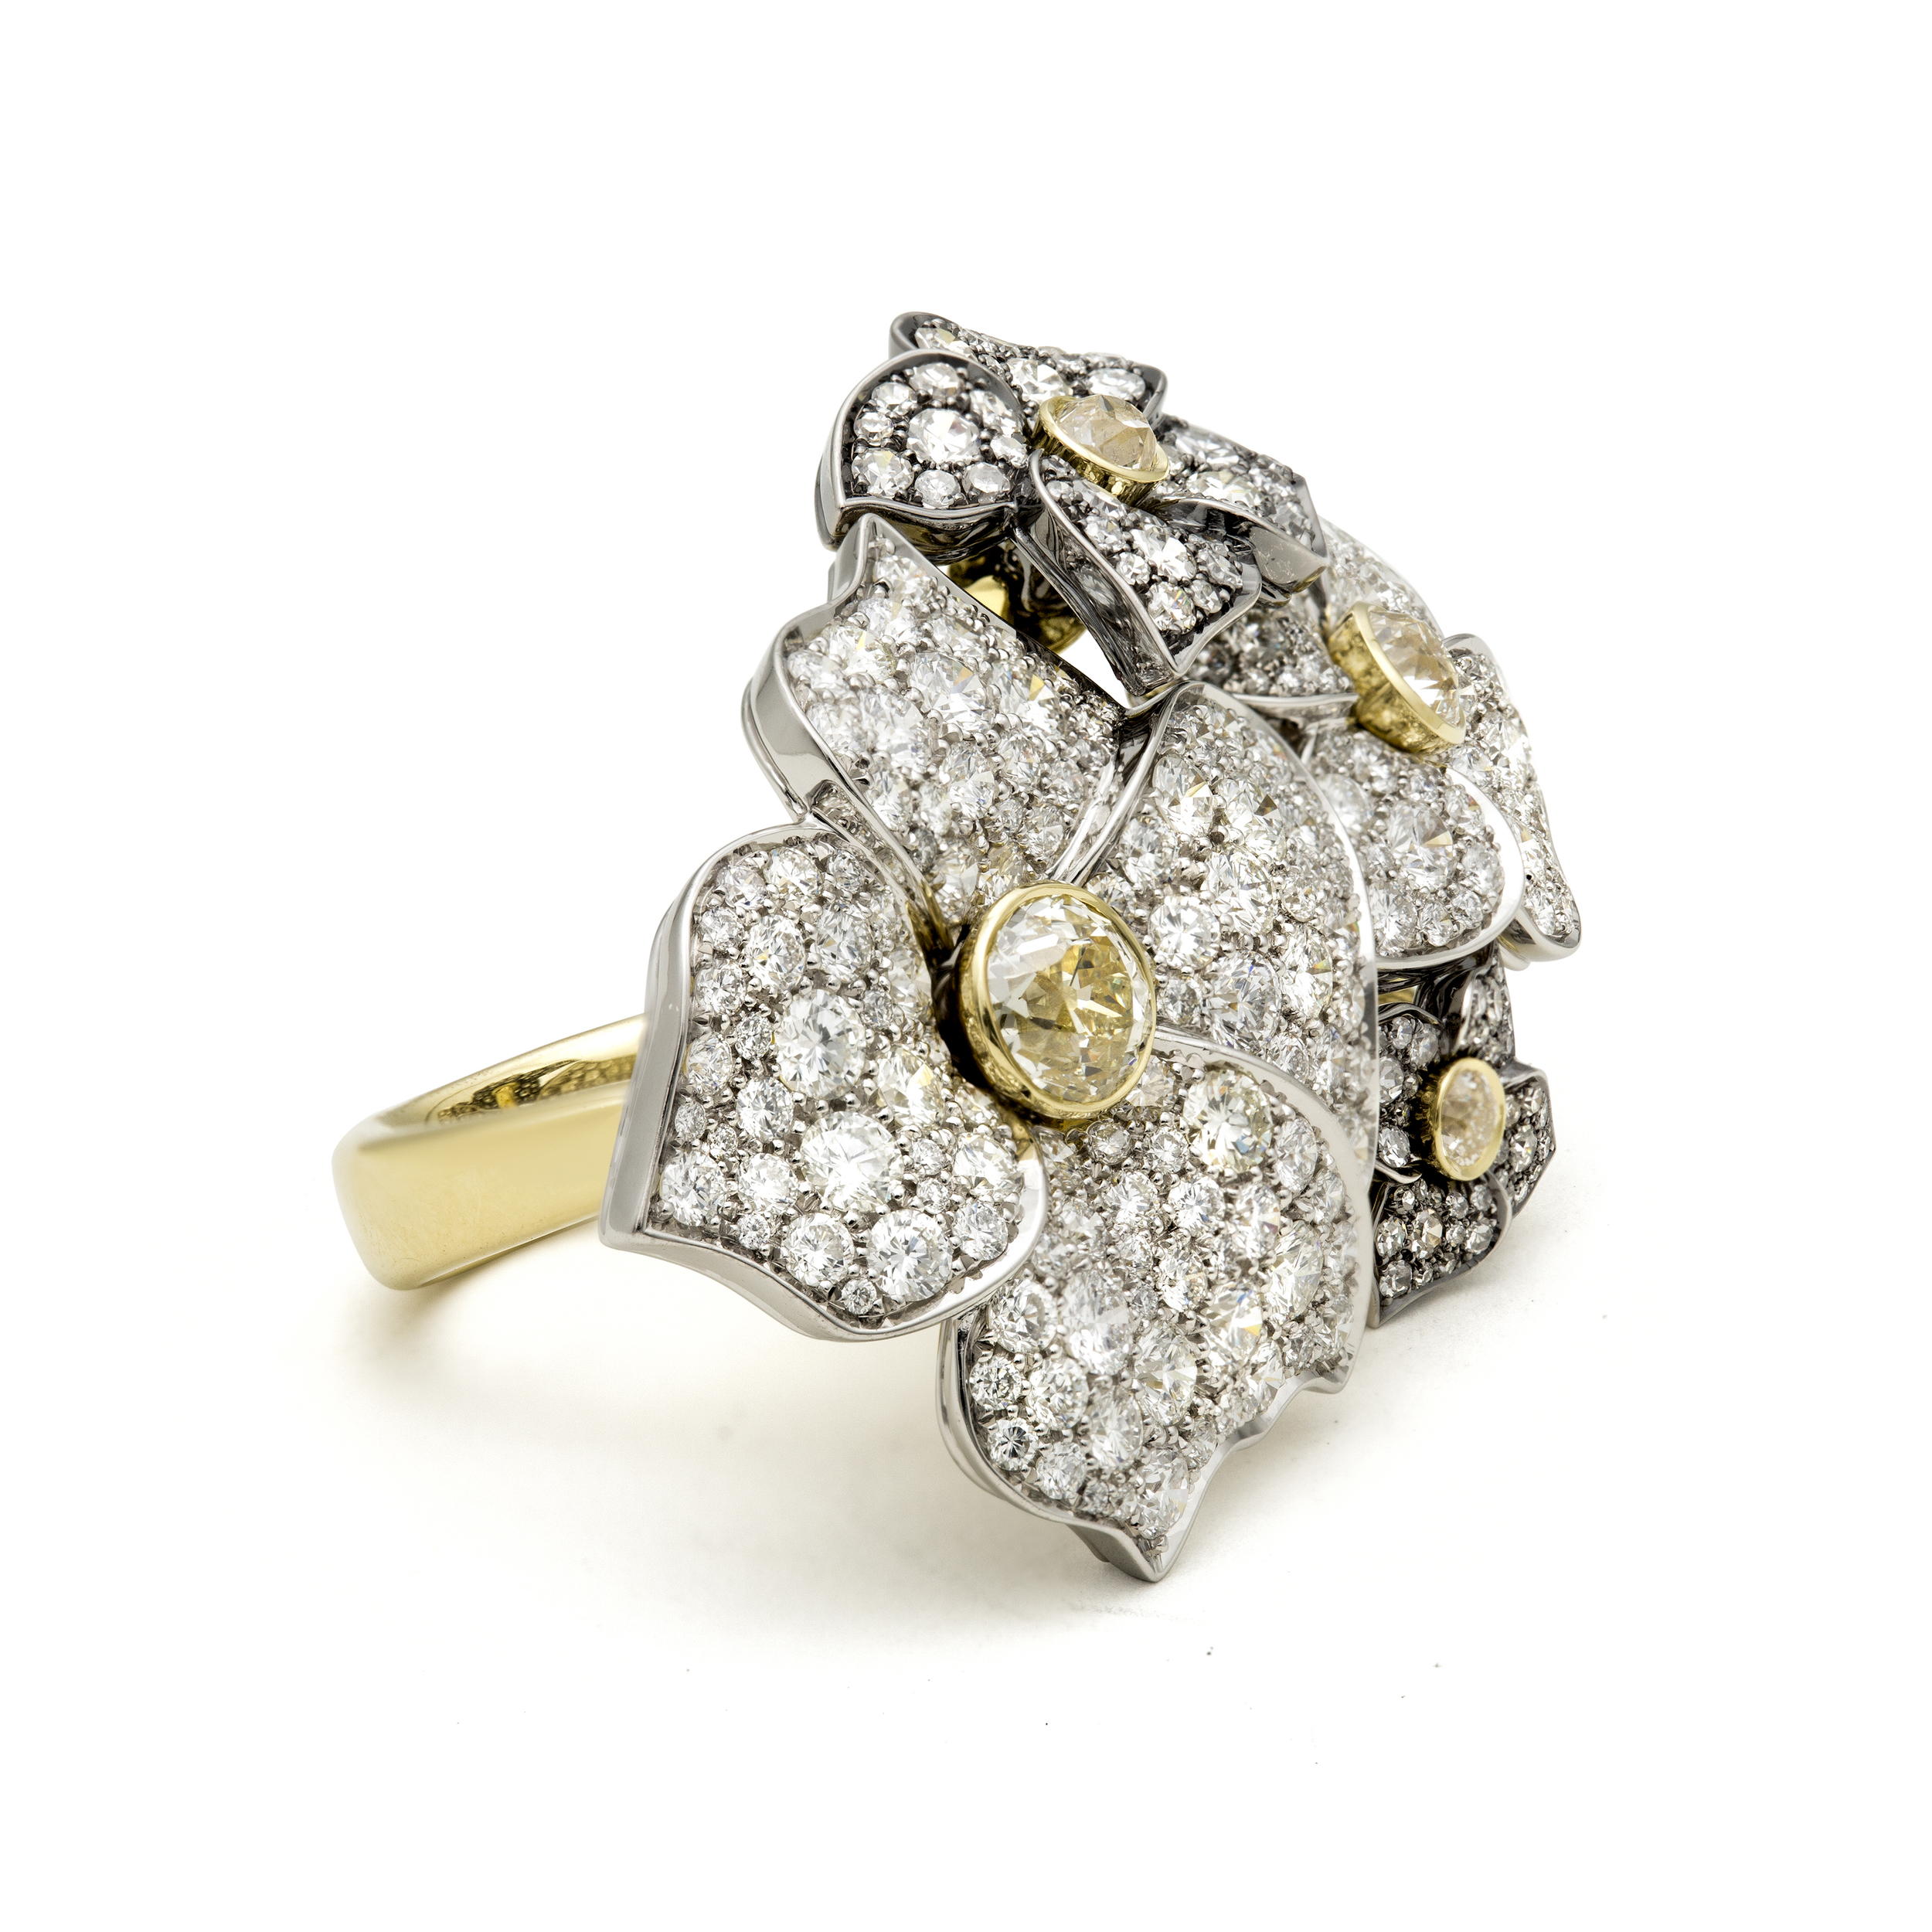 HS110 - Hail Storm Fiore Ring - Side View - HR.jpg